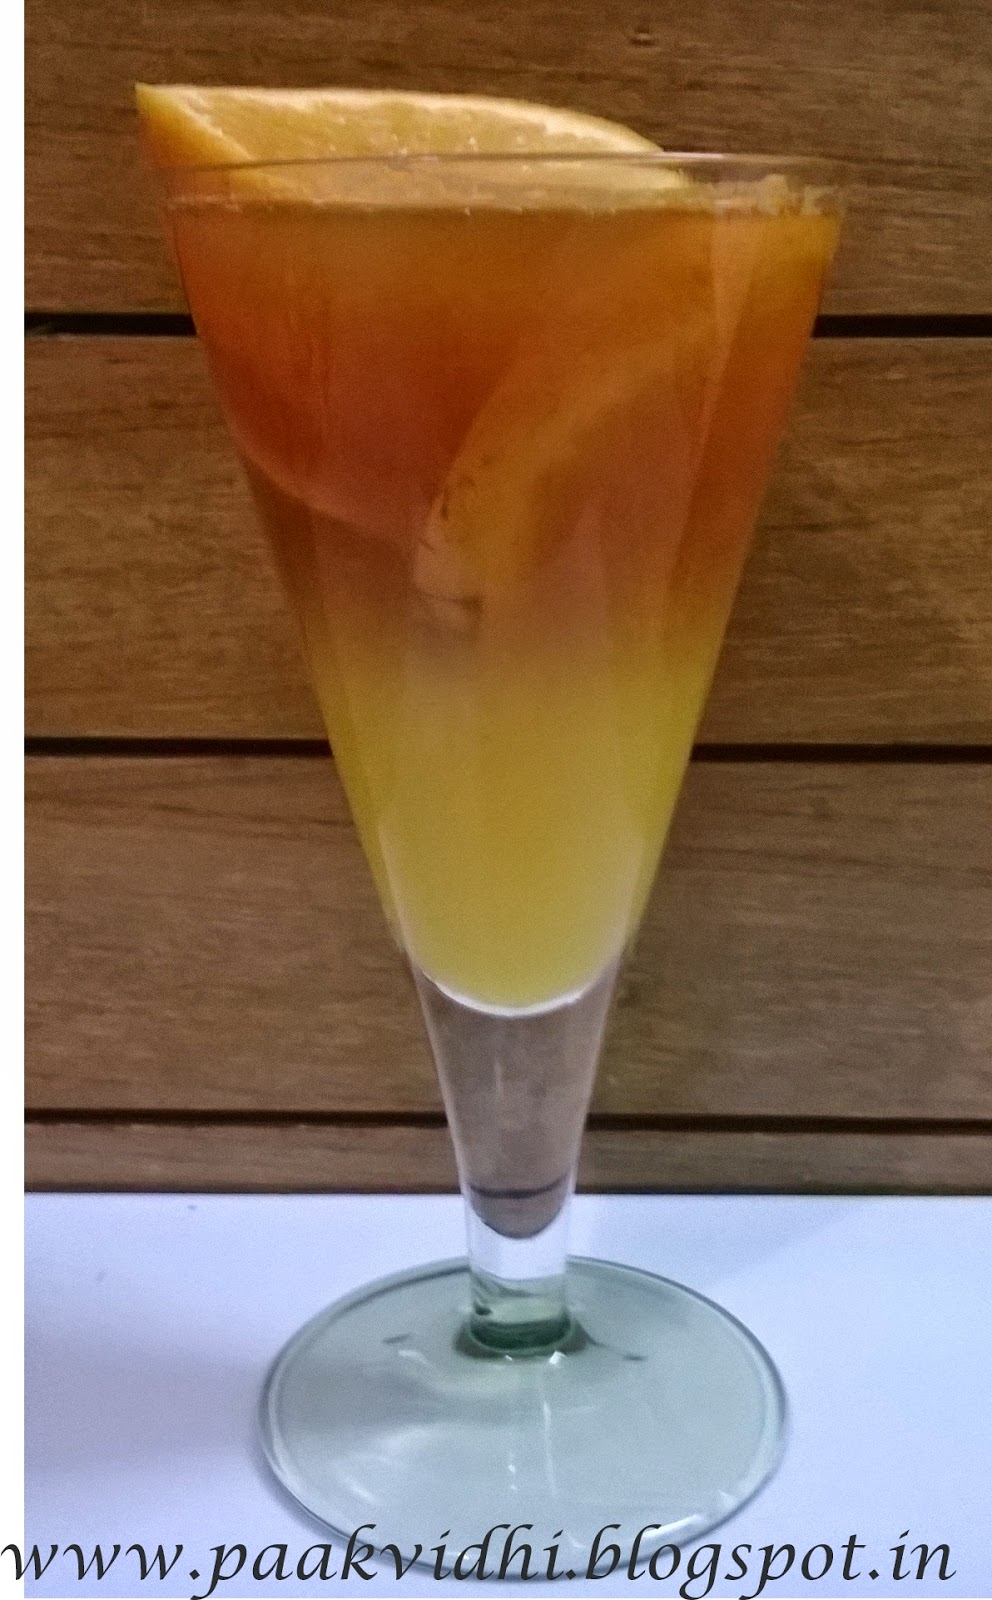 http://paakvidhi.blogspot.in/2014/04/orange-ice-tea.html